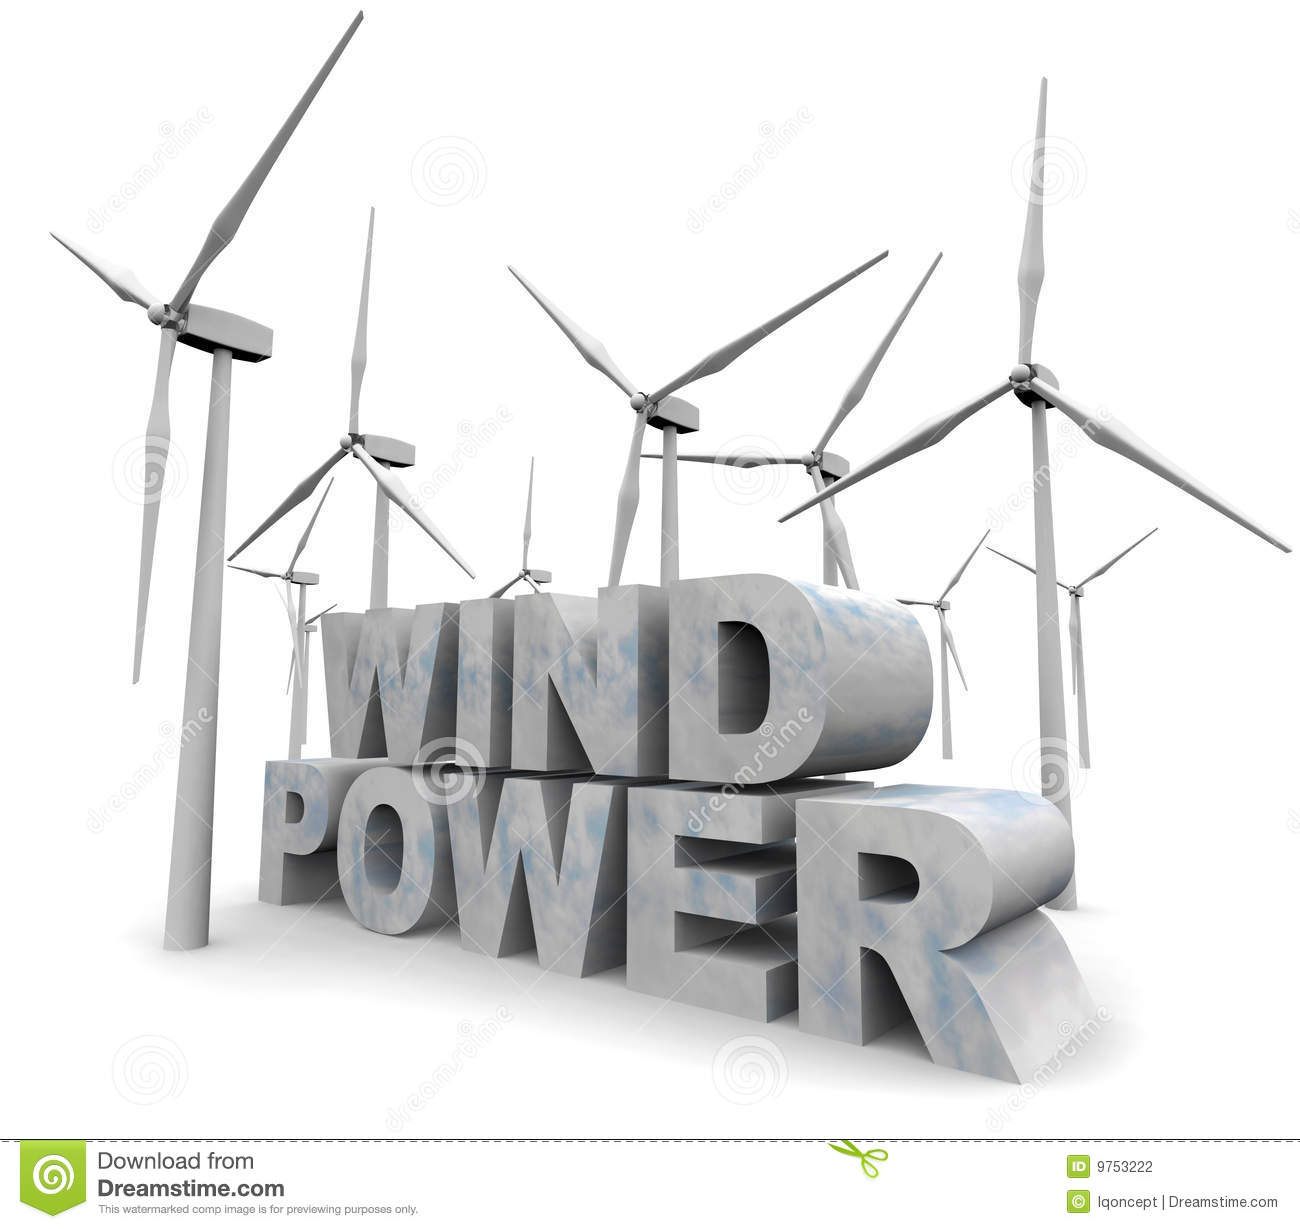 The words Wind Power surrounded by windmill turbines.